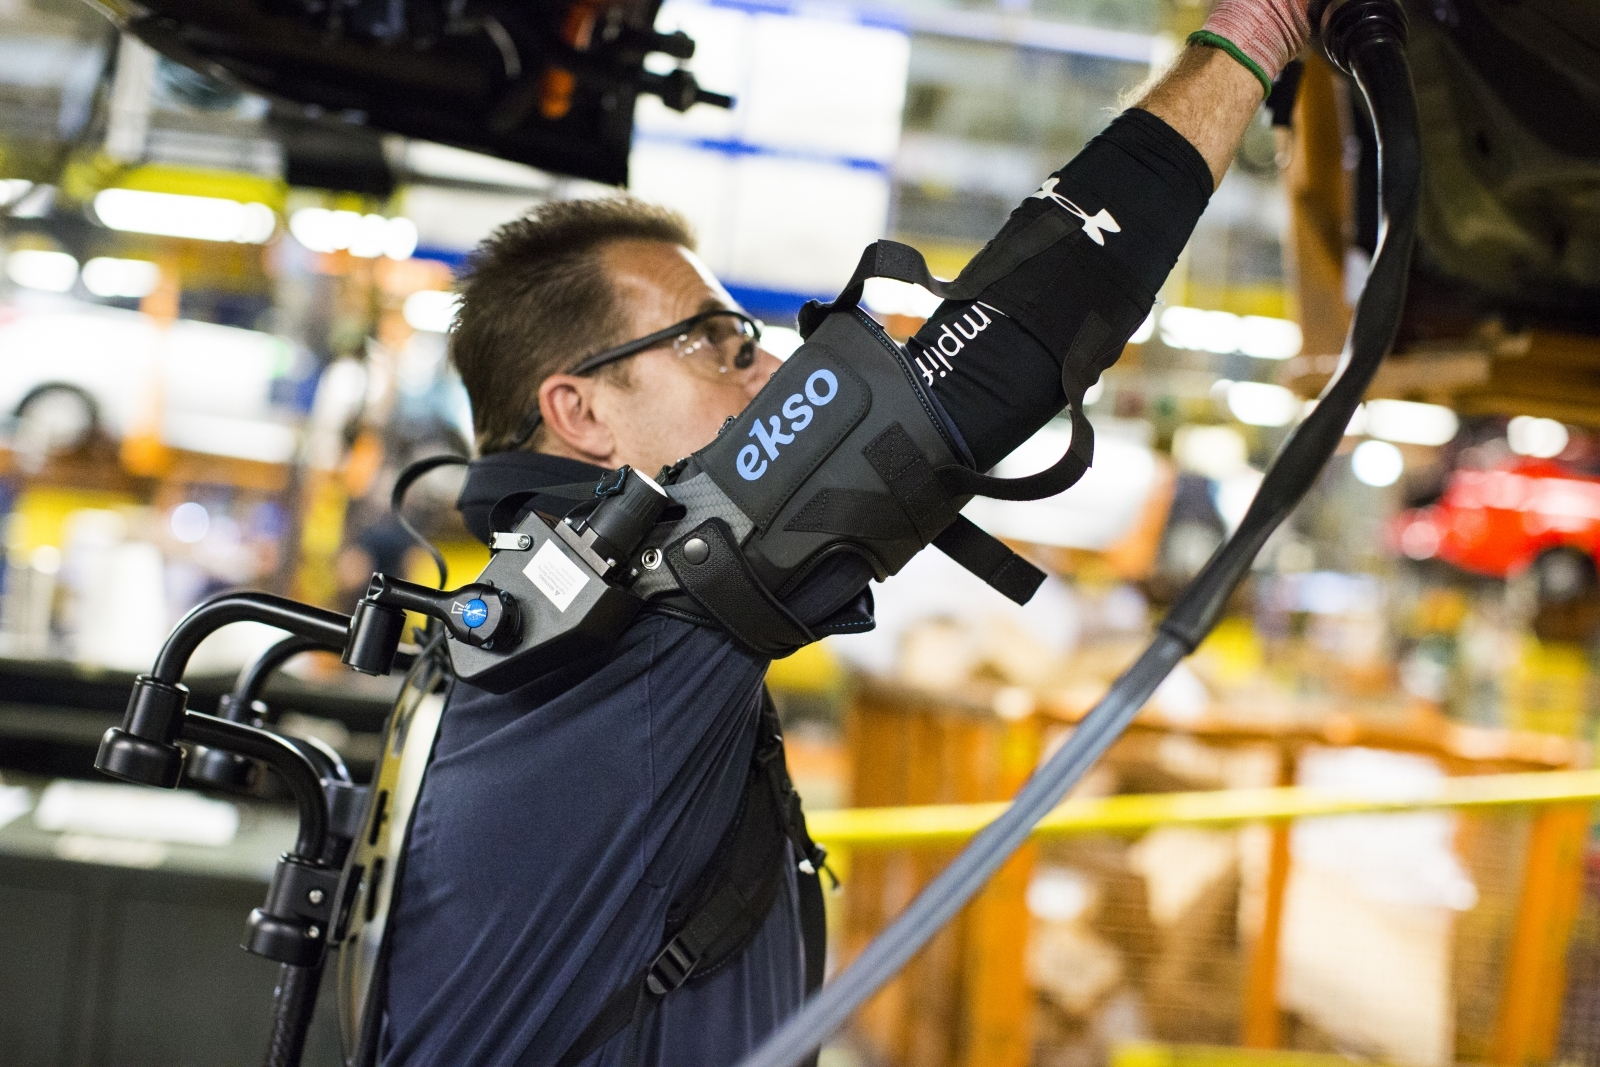 Ford and Ekso Introduce Bionic Workers